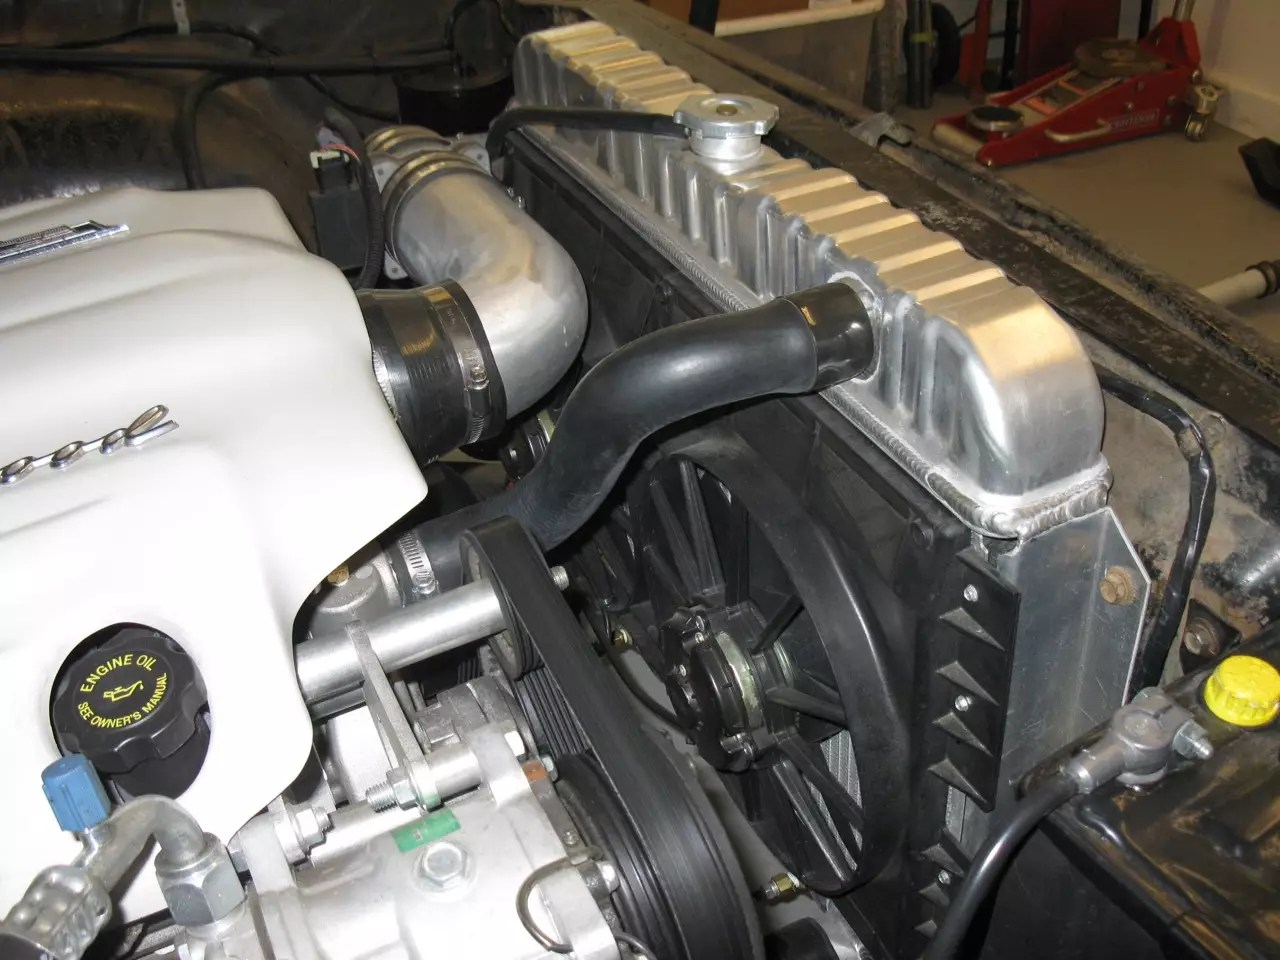 hight resolution of this 1960 chevy station wagon has an ls engine swap and a maradyne dual electric fan to keep things nice and cool our fans can perform and survive the